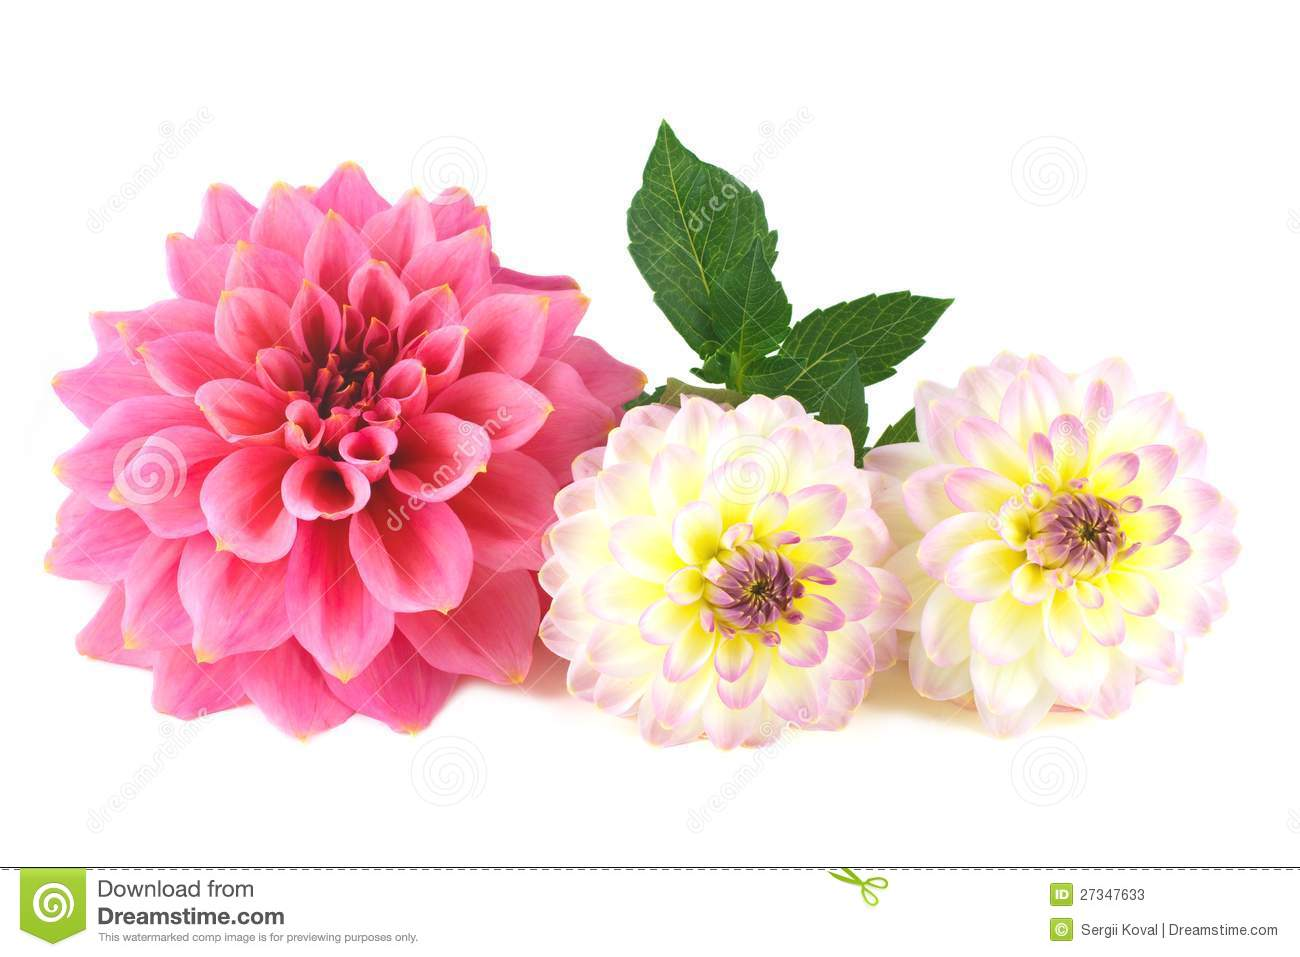 Dahlia flower arrangement stock image image of pattern 27347633 dahlia flower arrangement izmirmasajfo